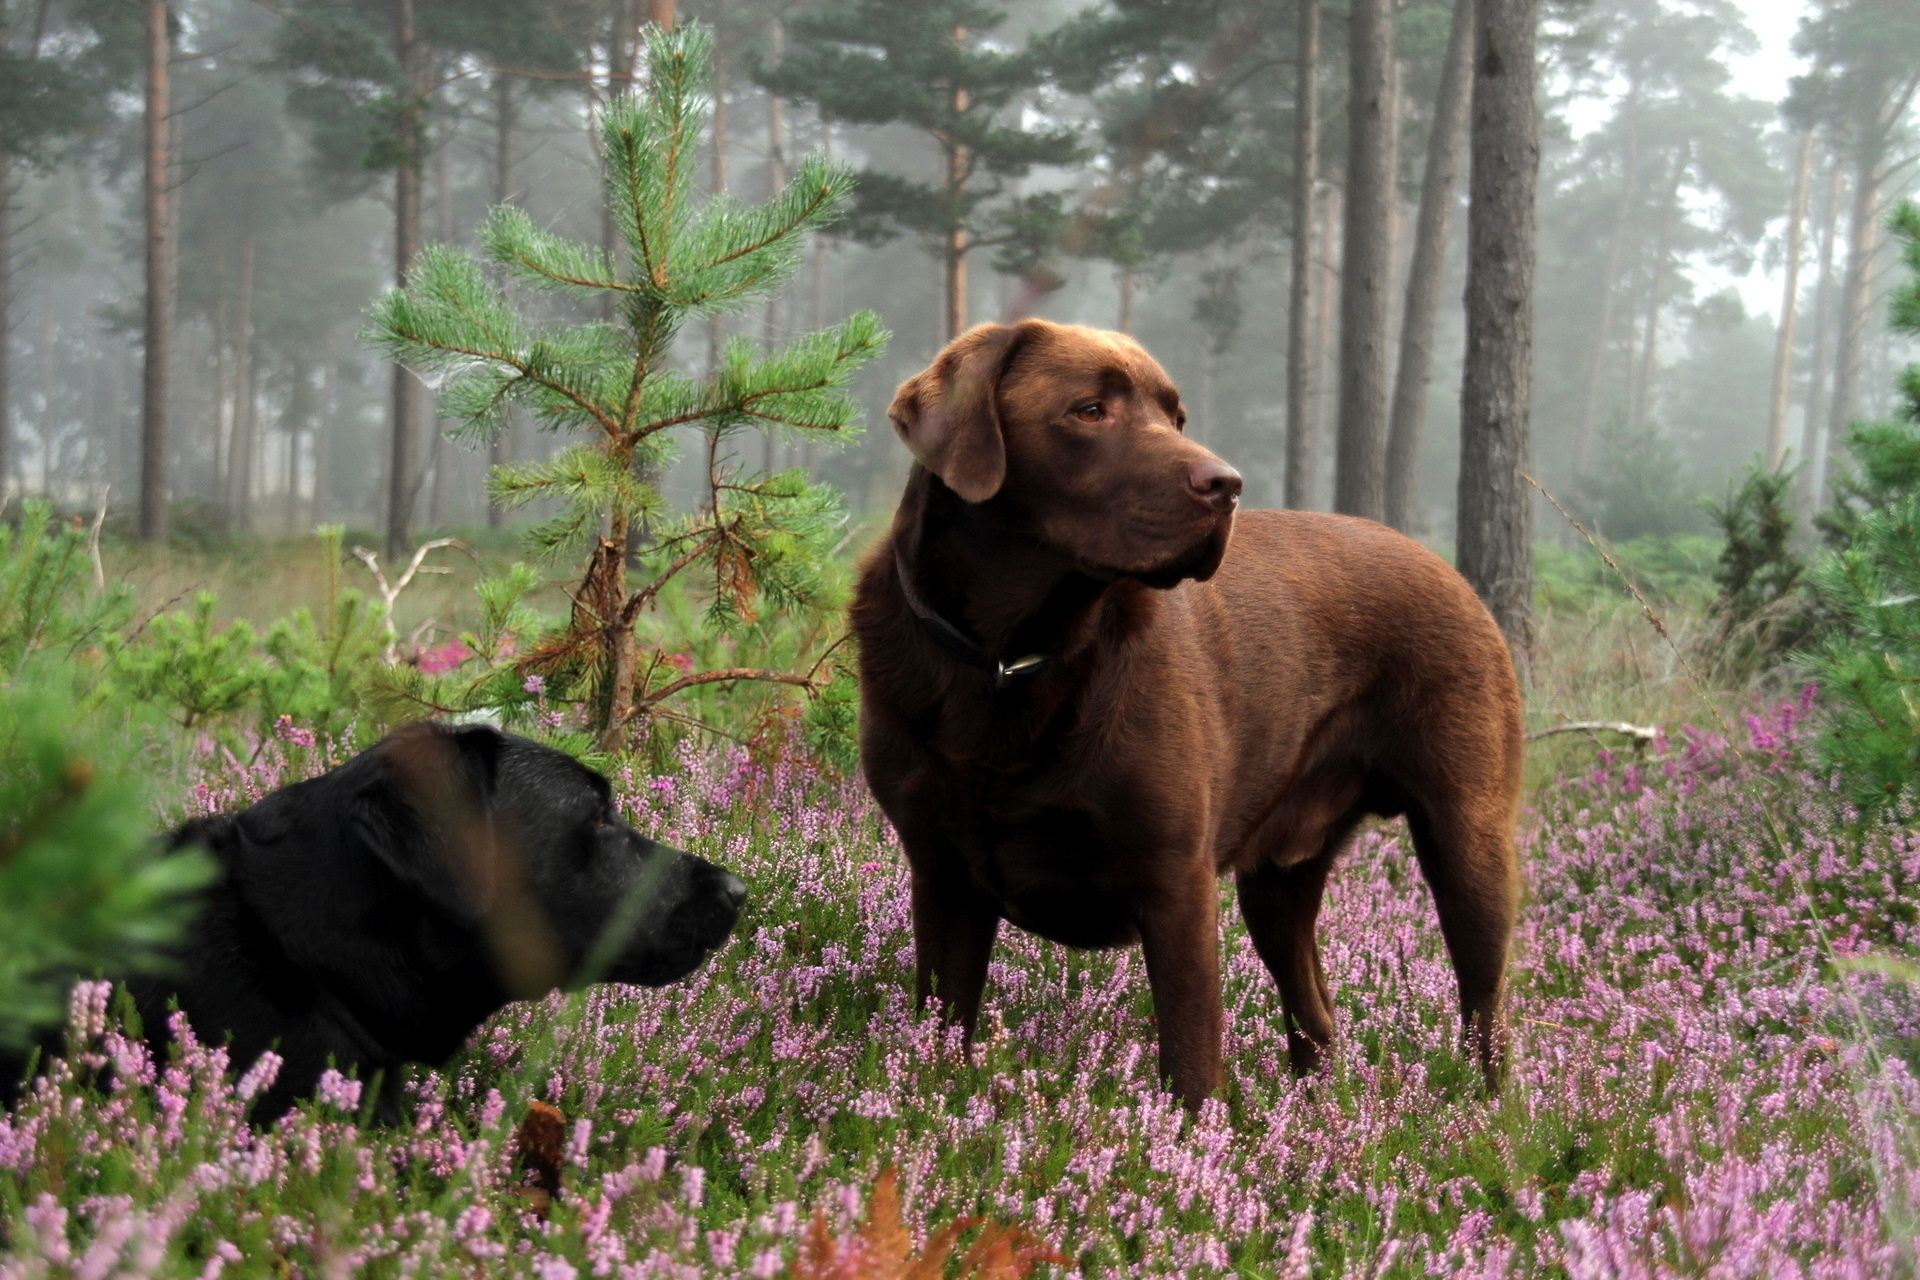 63895 download wallpaper Animals, Dogs, Polyana, Glade, Grass, To Lie Down, Lie, Relaxation, Rest, Flowers screensavers and pictures for free